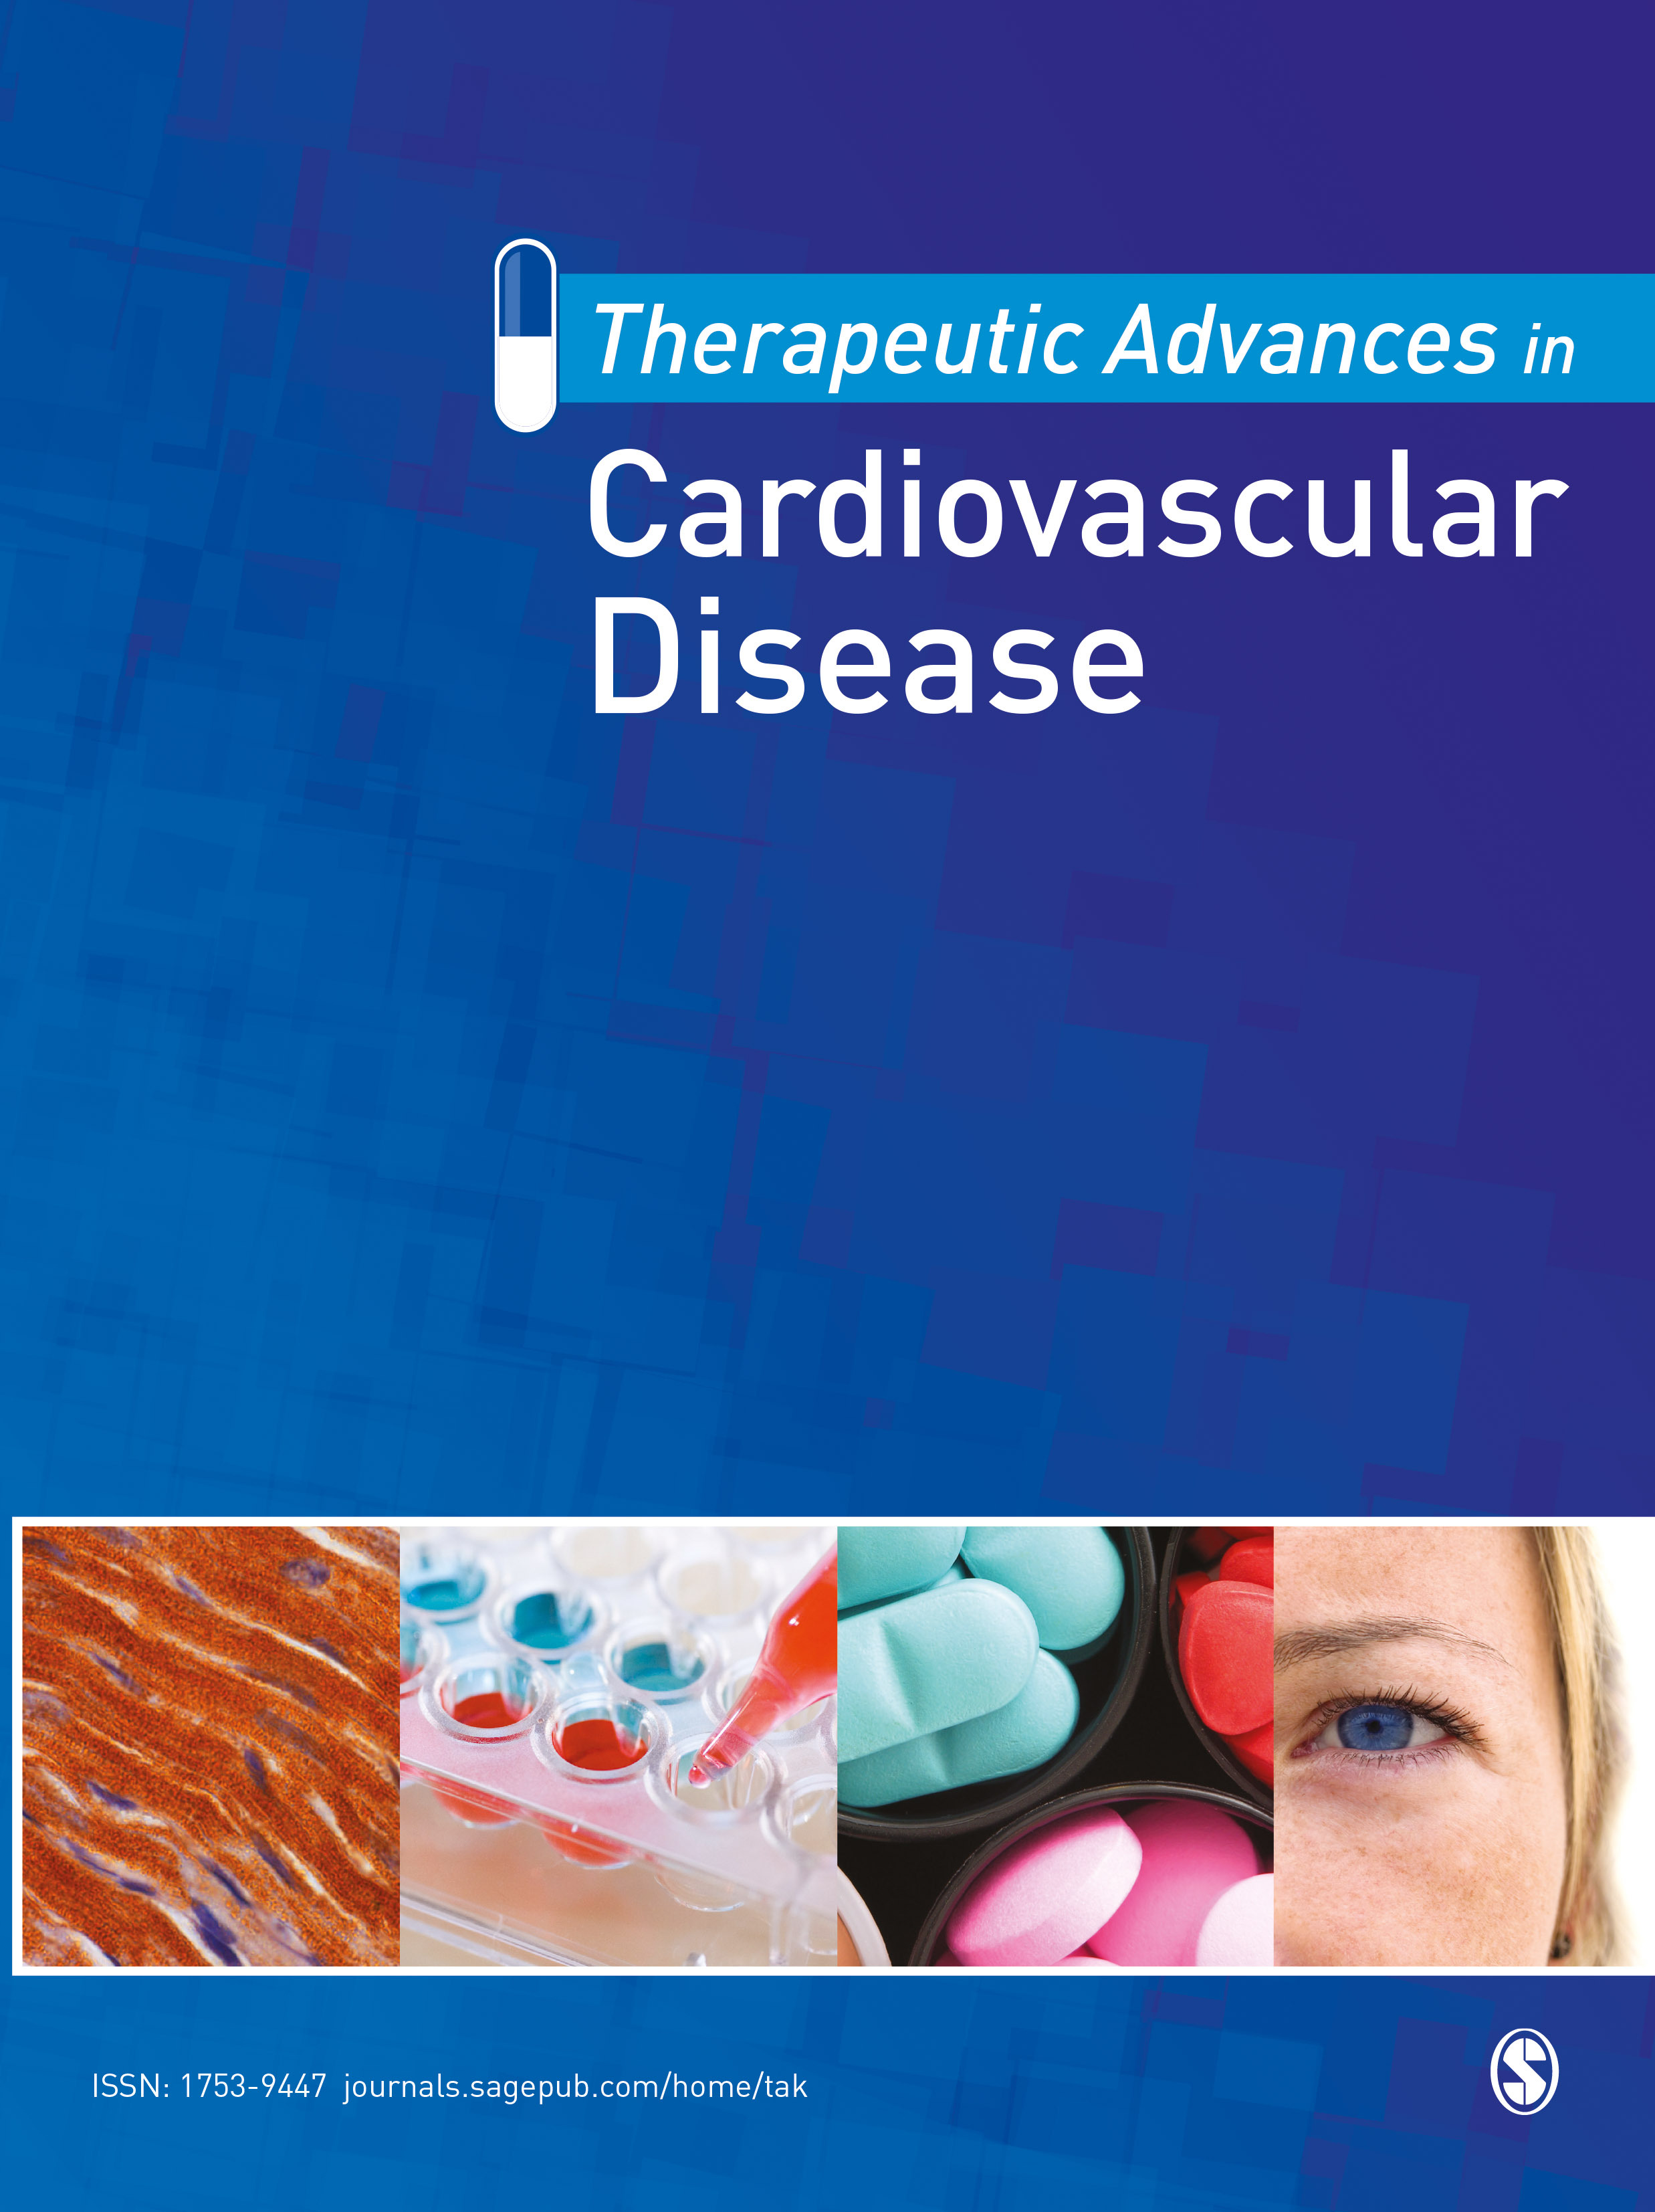 Therapeutic Advances in Cardiovascular Disease